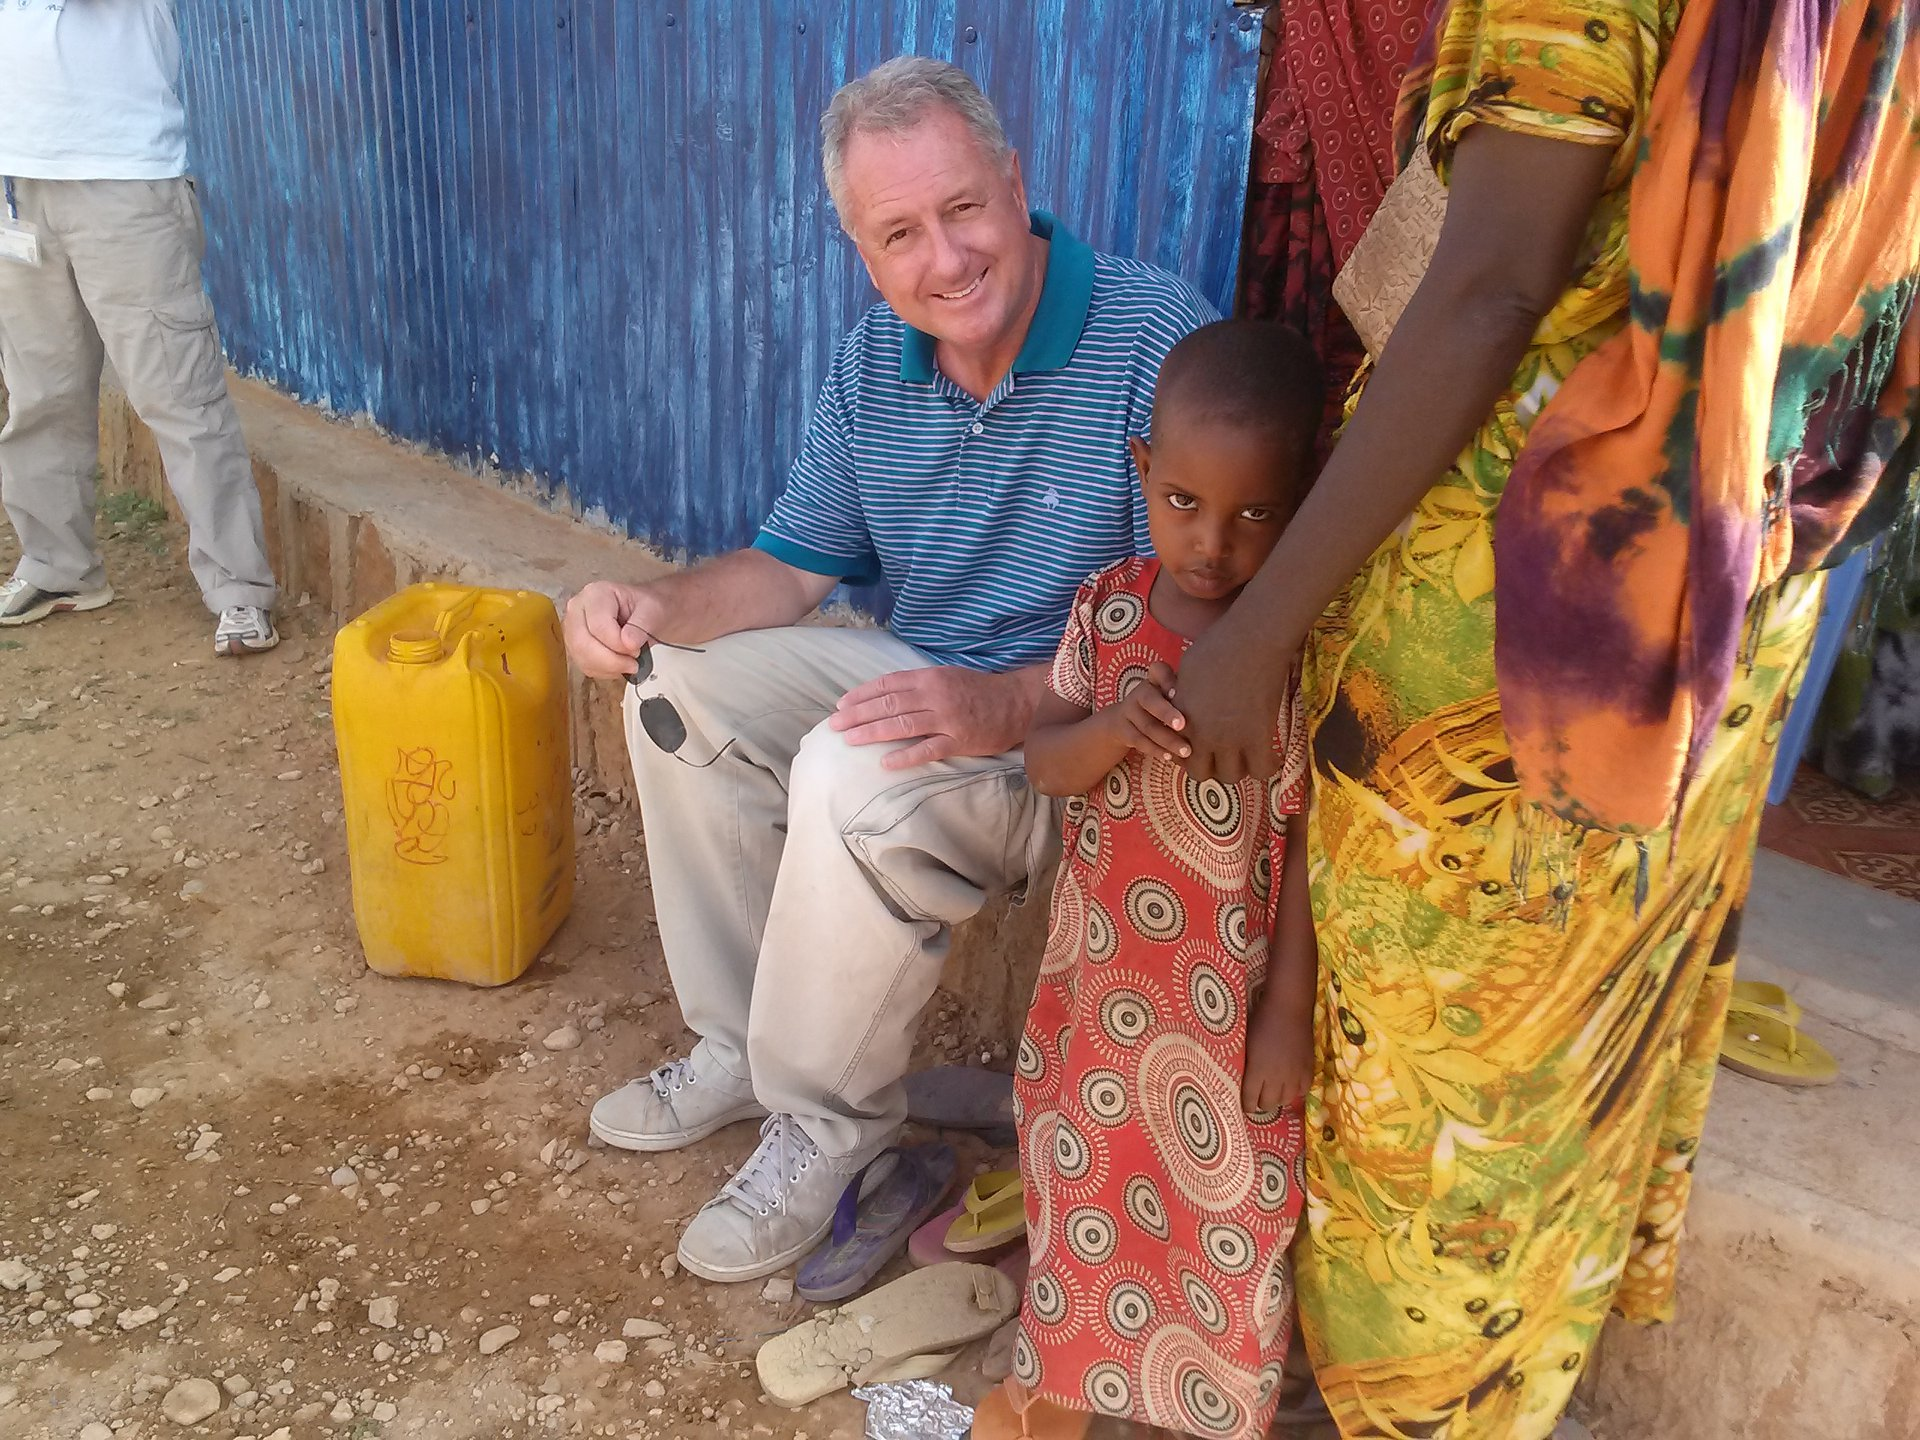 Peter in Ethiopia refugee camp